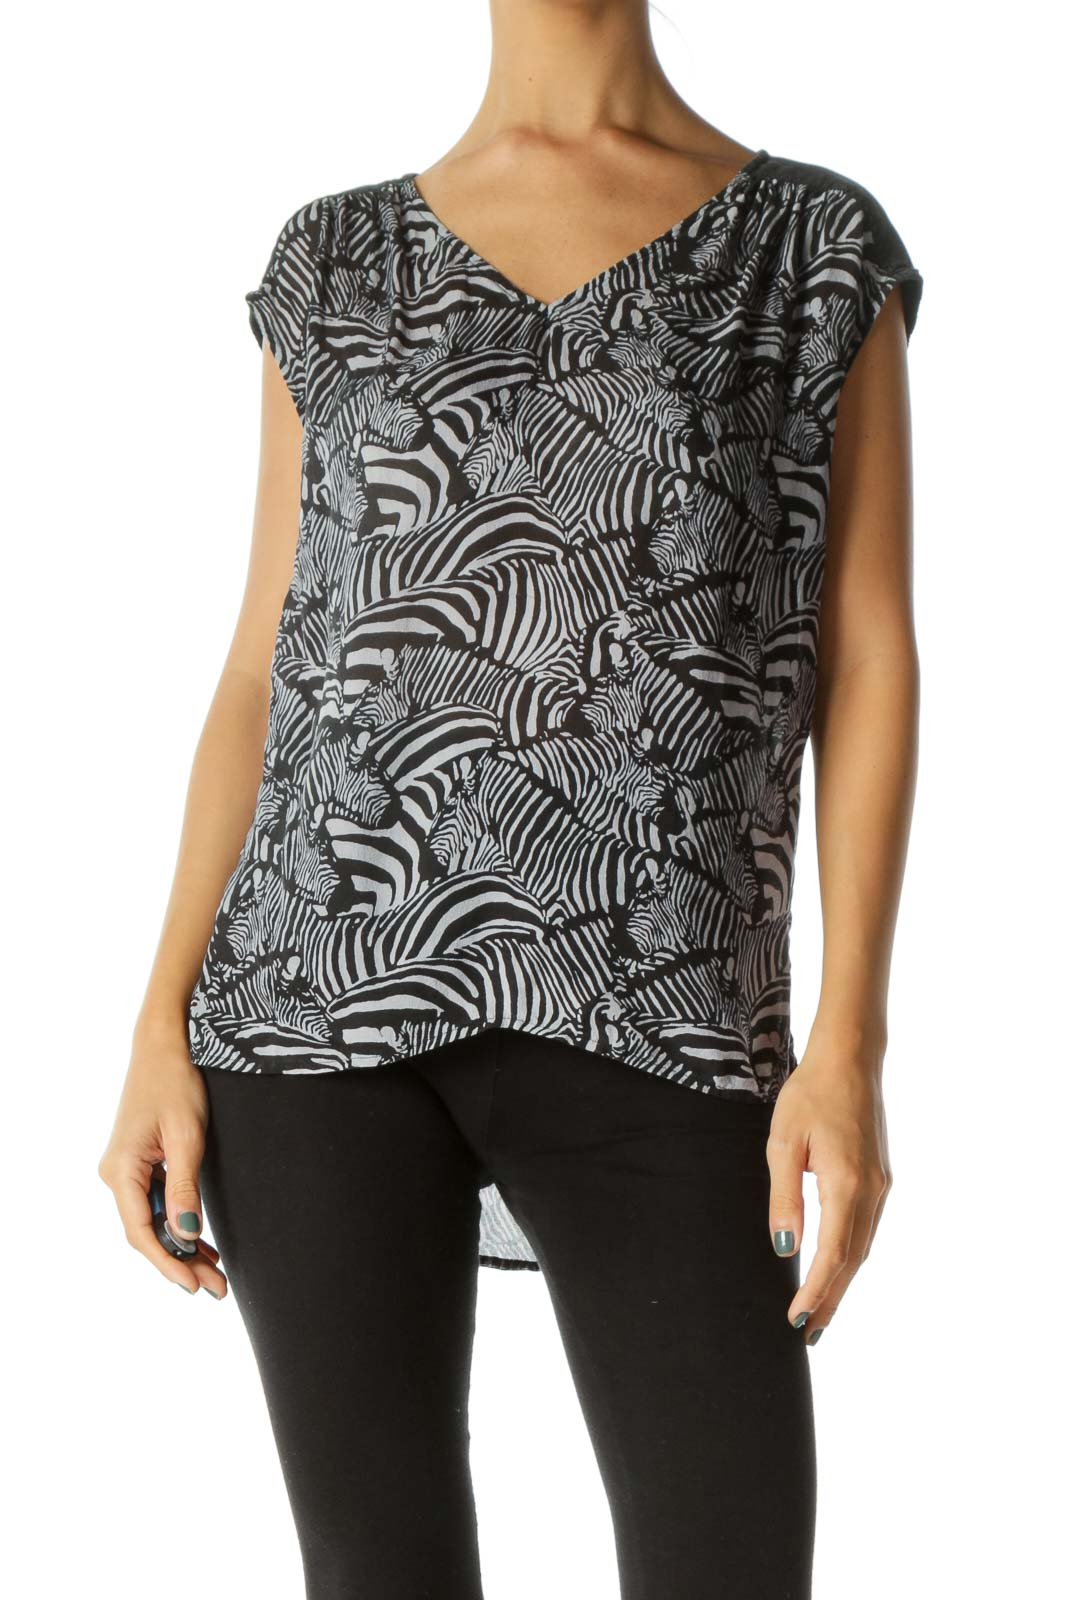 Faded Black Gray 100% Silk Print V-Neck Light Knit Top